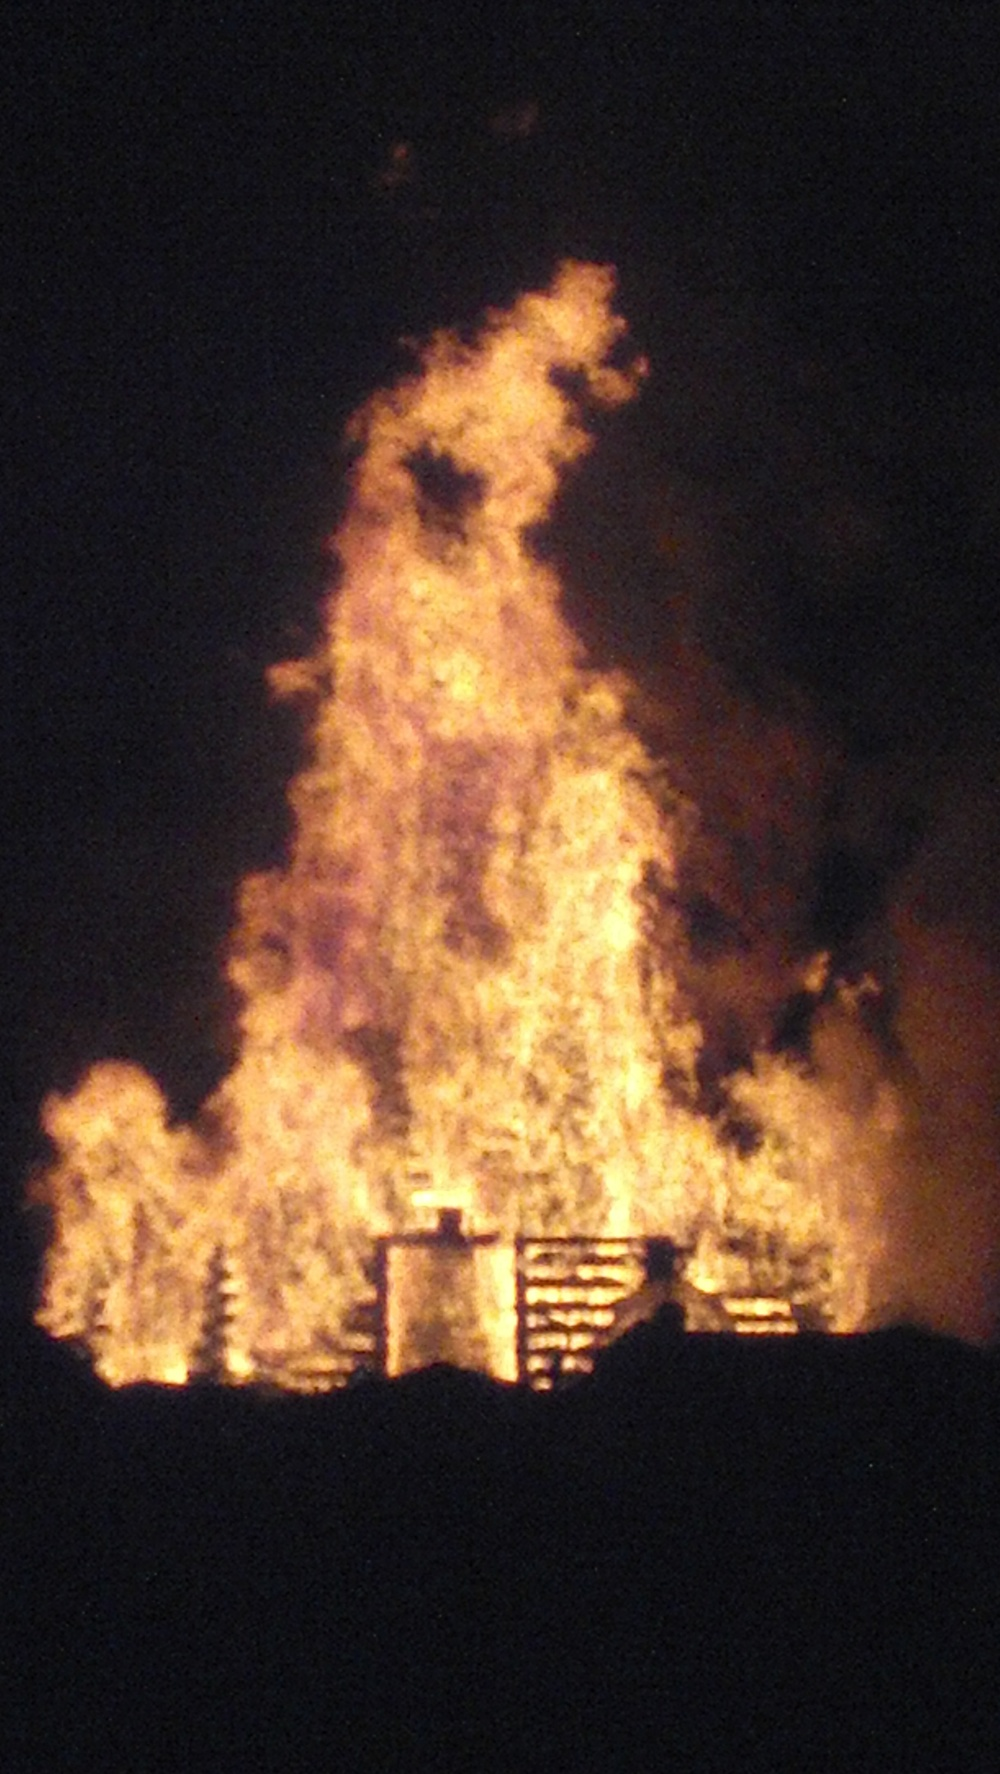 2012 Homecoming Bonefire.jpg